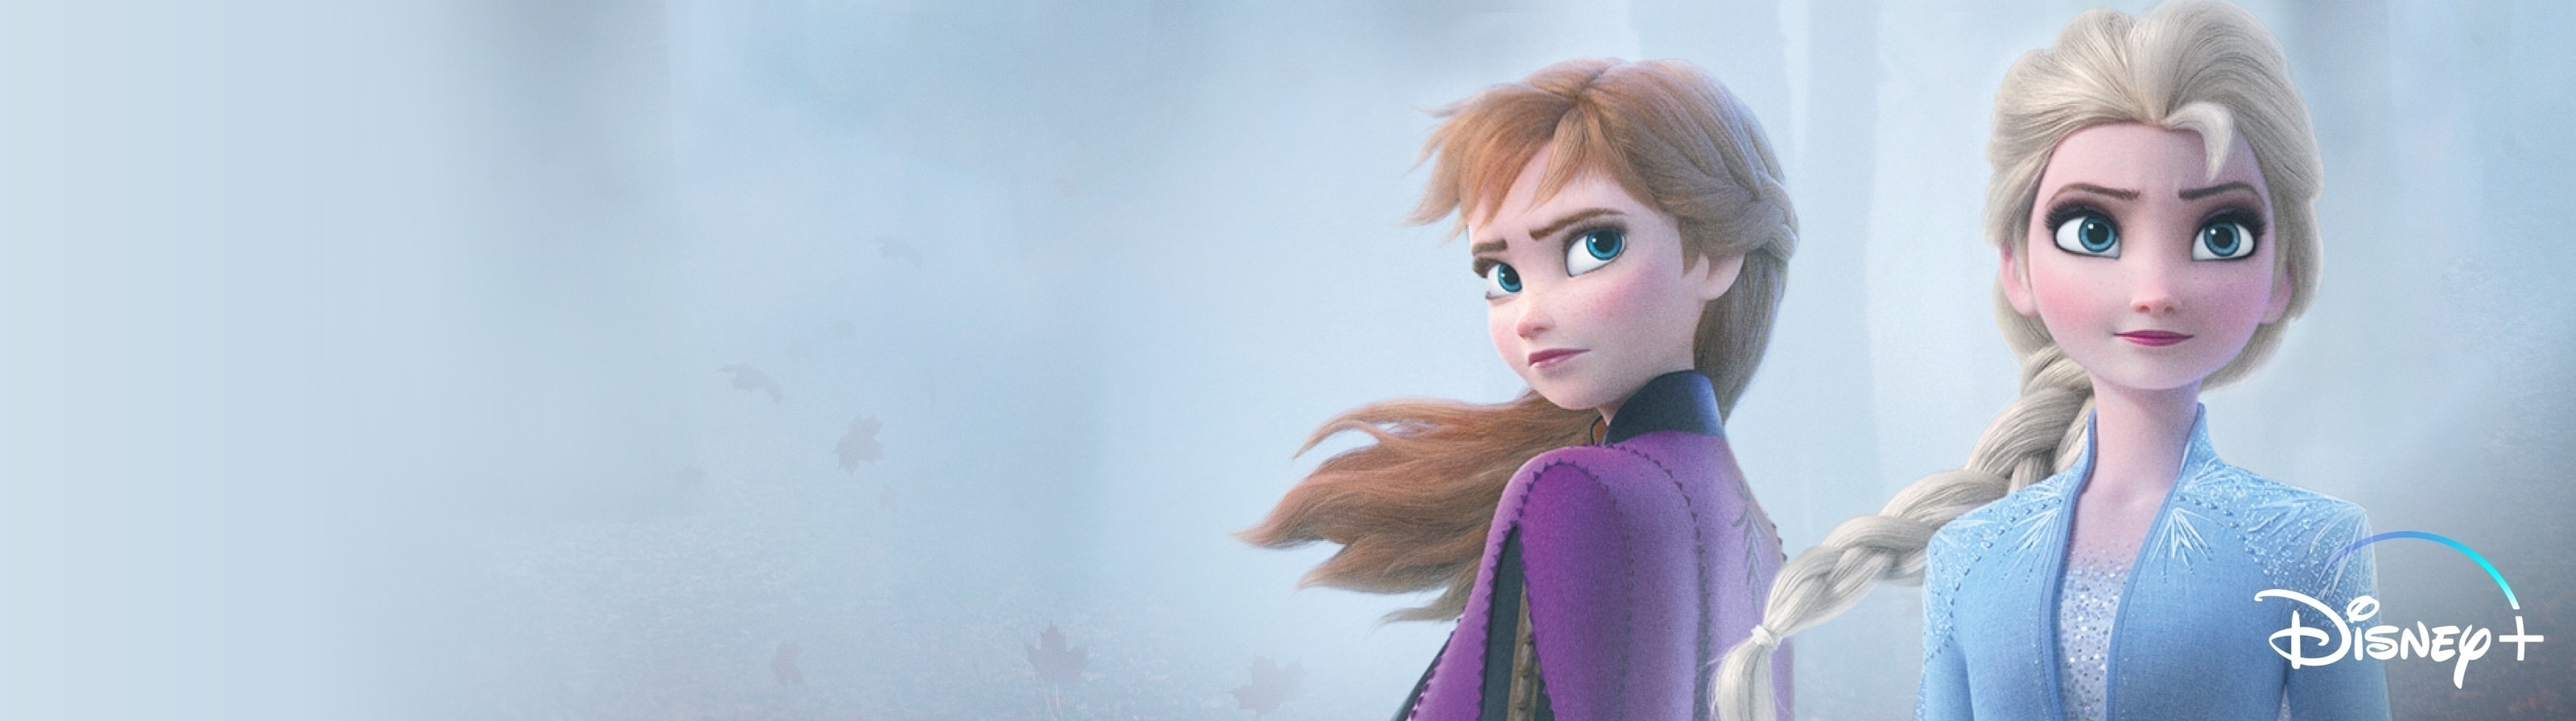 Frozen 2 - Il Segreto di Arendelle è ora disponibile in streaming su Disney+